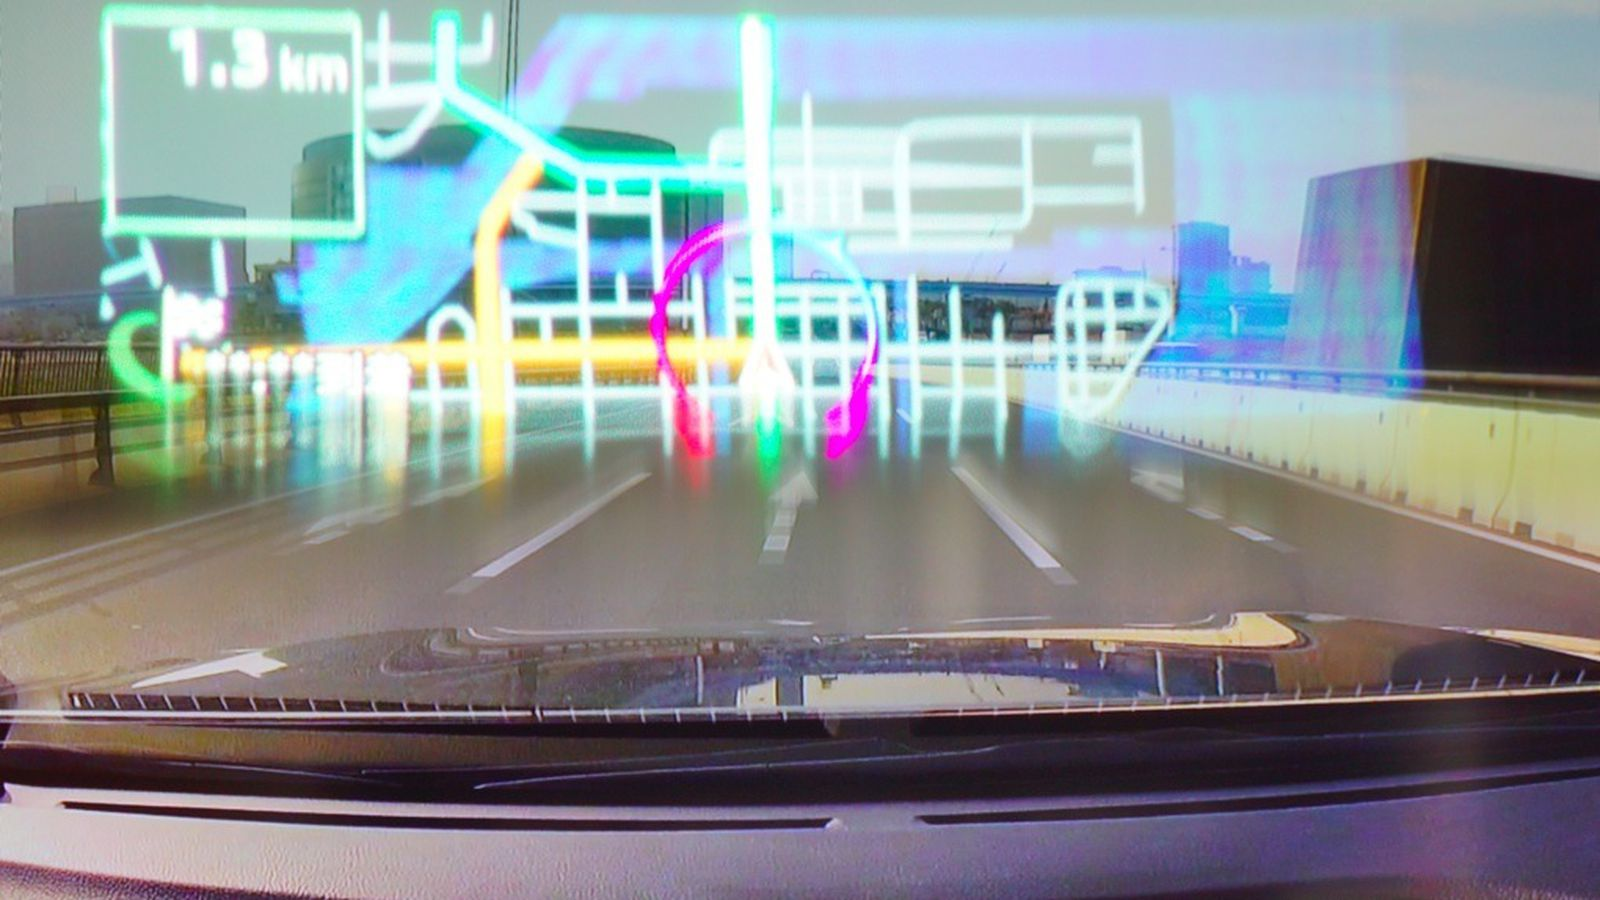 Taking Pioneer S Cyber Navi Laser Projected Car Hud For A